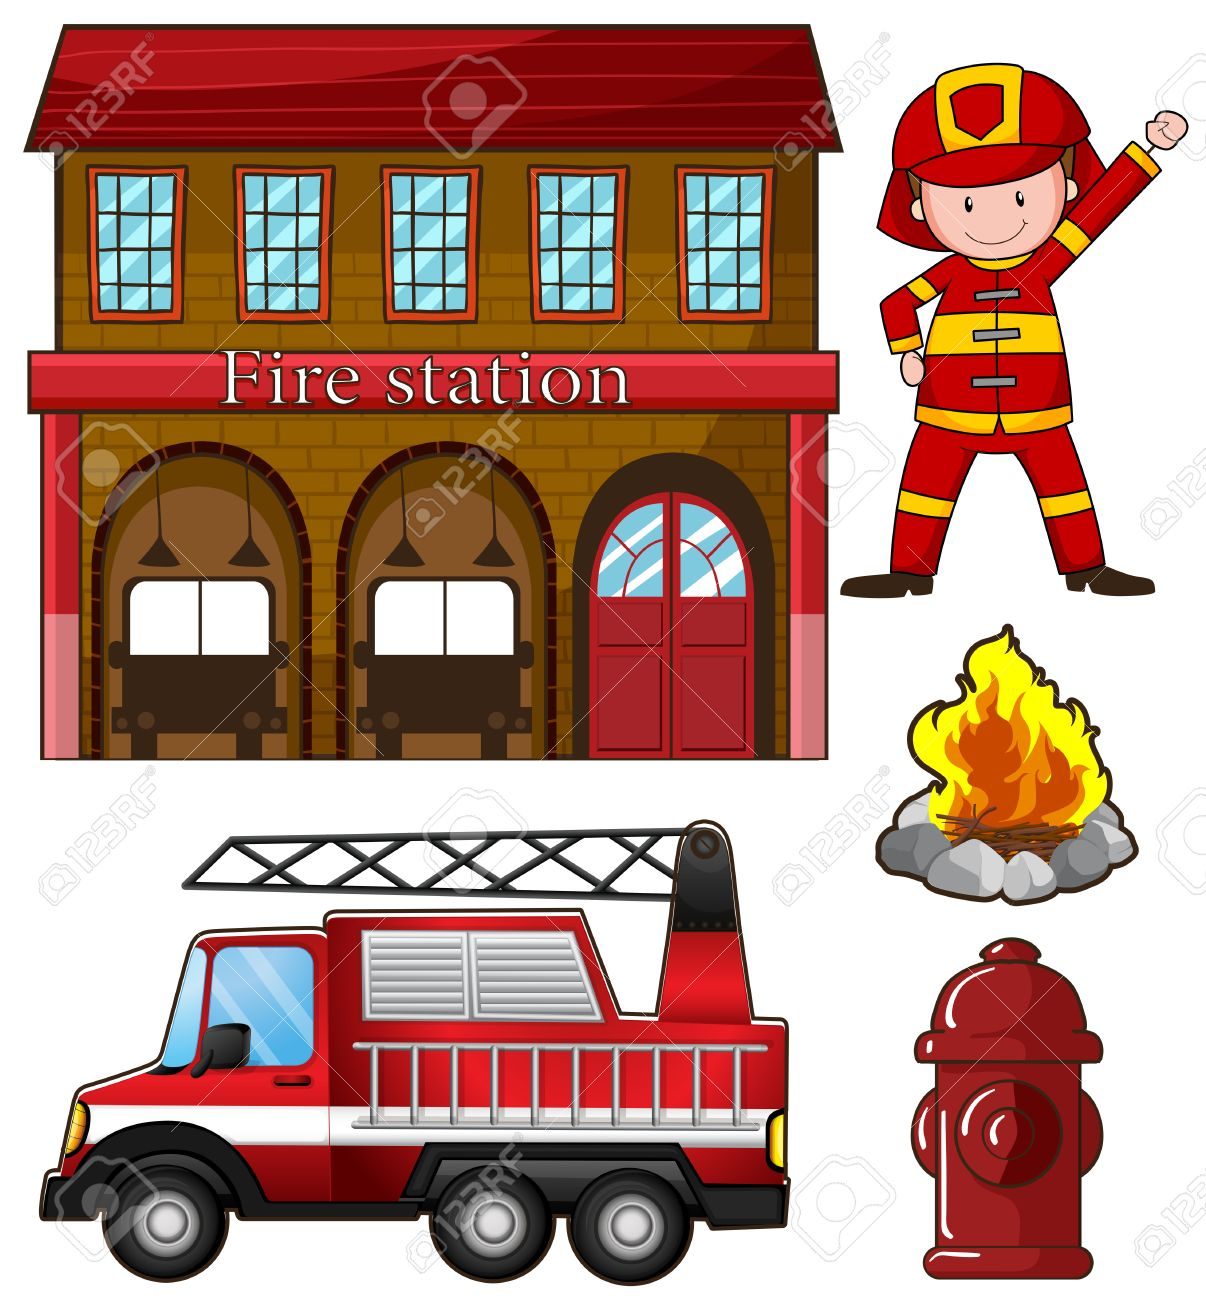 3,119 Fire Station Cliparts, Stock Vector And Royalty Free Fire ...